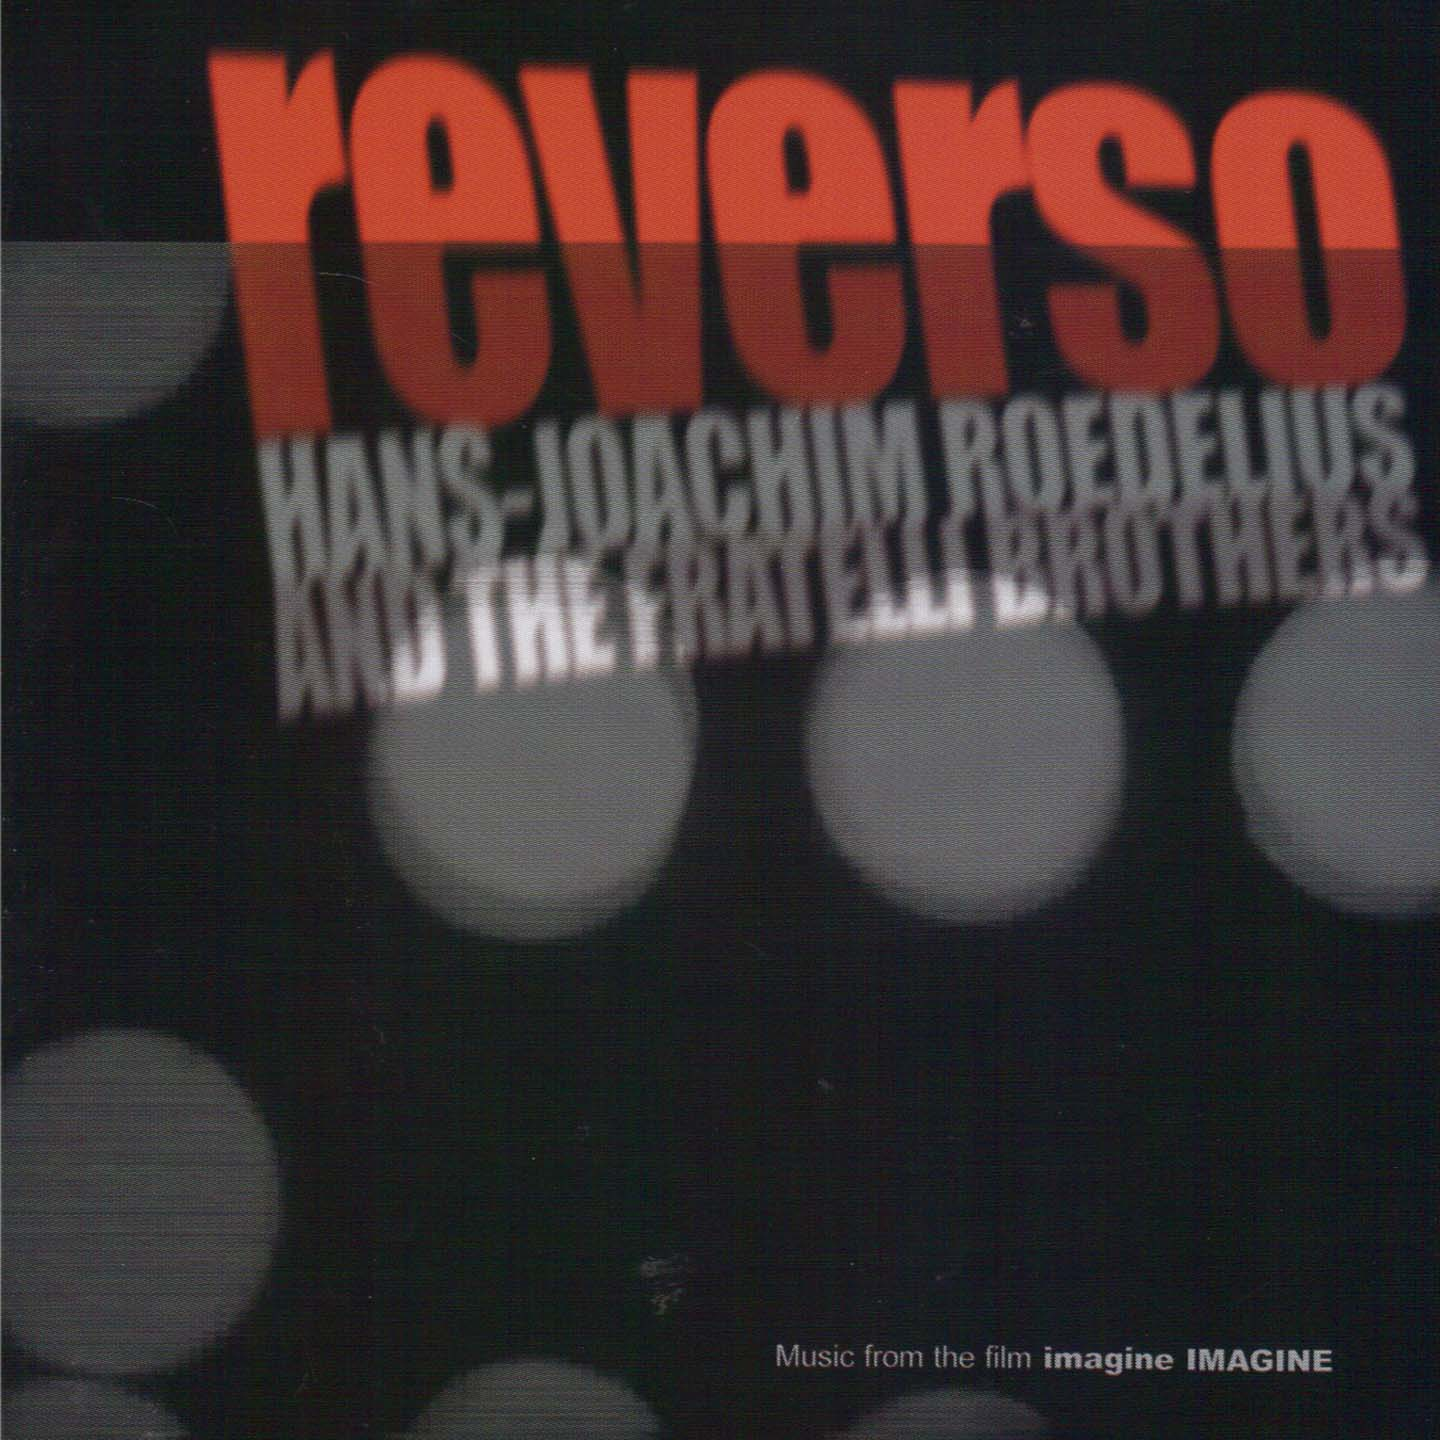 HANS-JOACHIM ROEDELIUS & THE FRATELLI BROTHERS - Reverso - CD